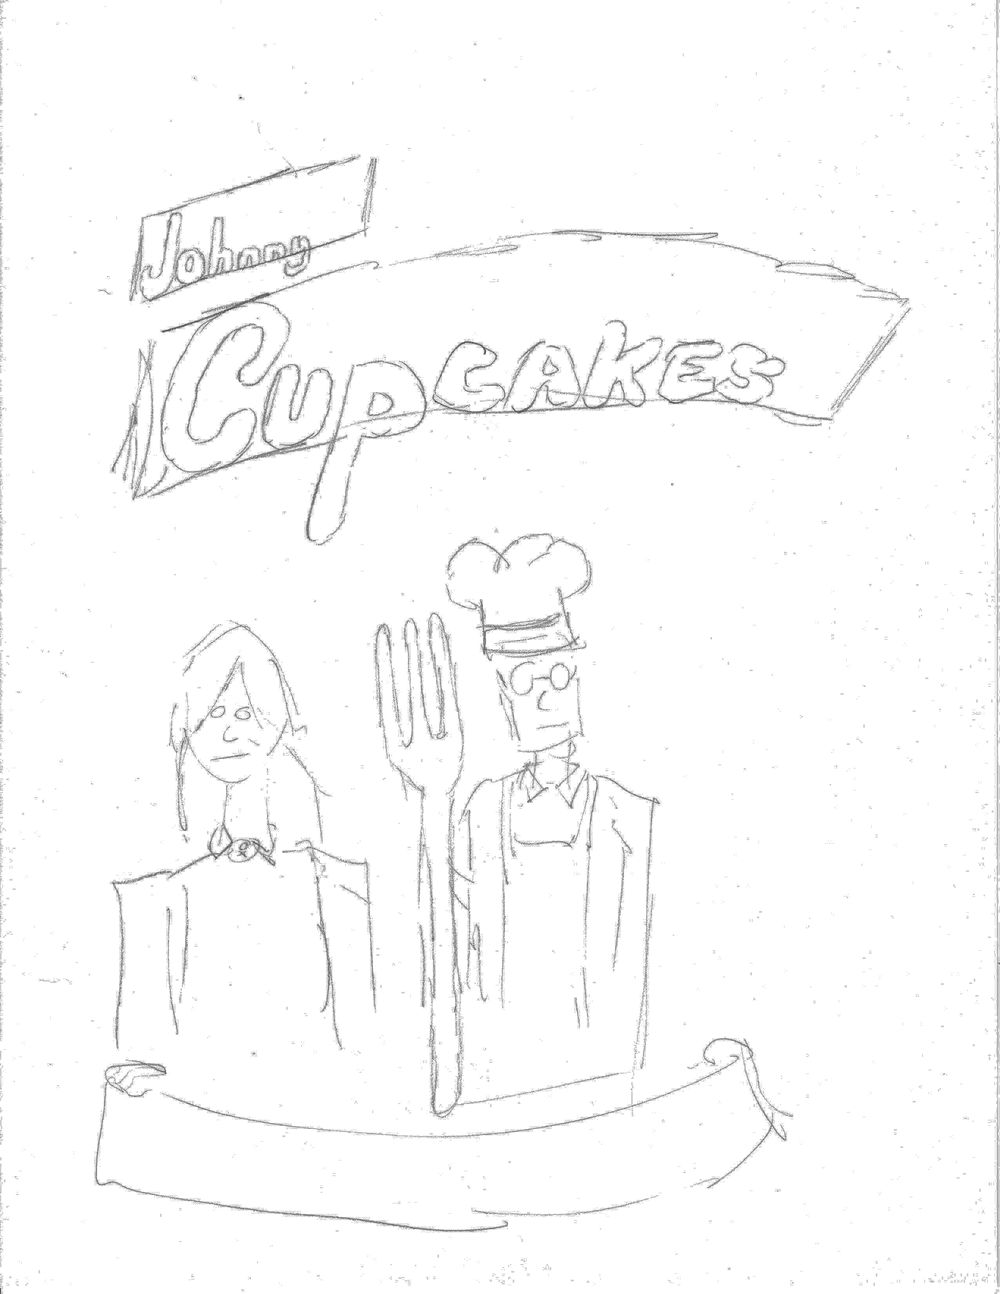 Grow your own cupcakes  - image 3 - student project